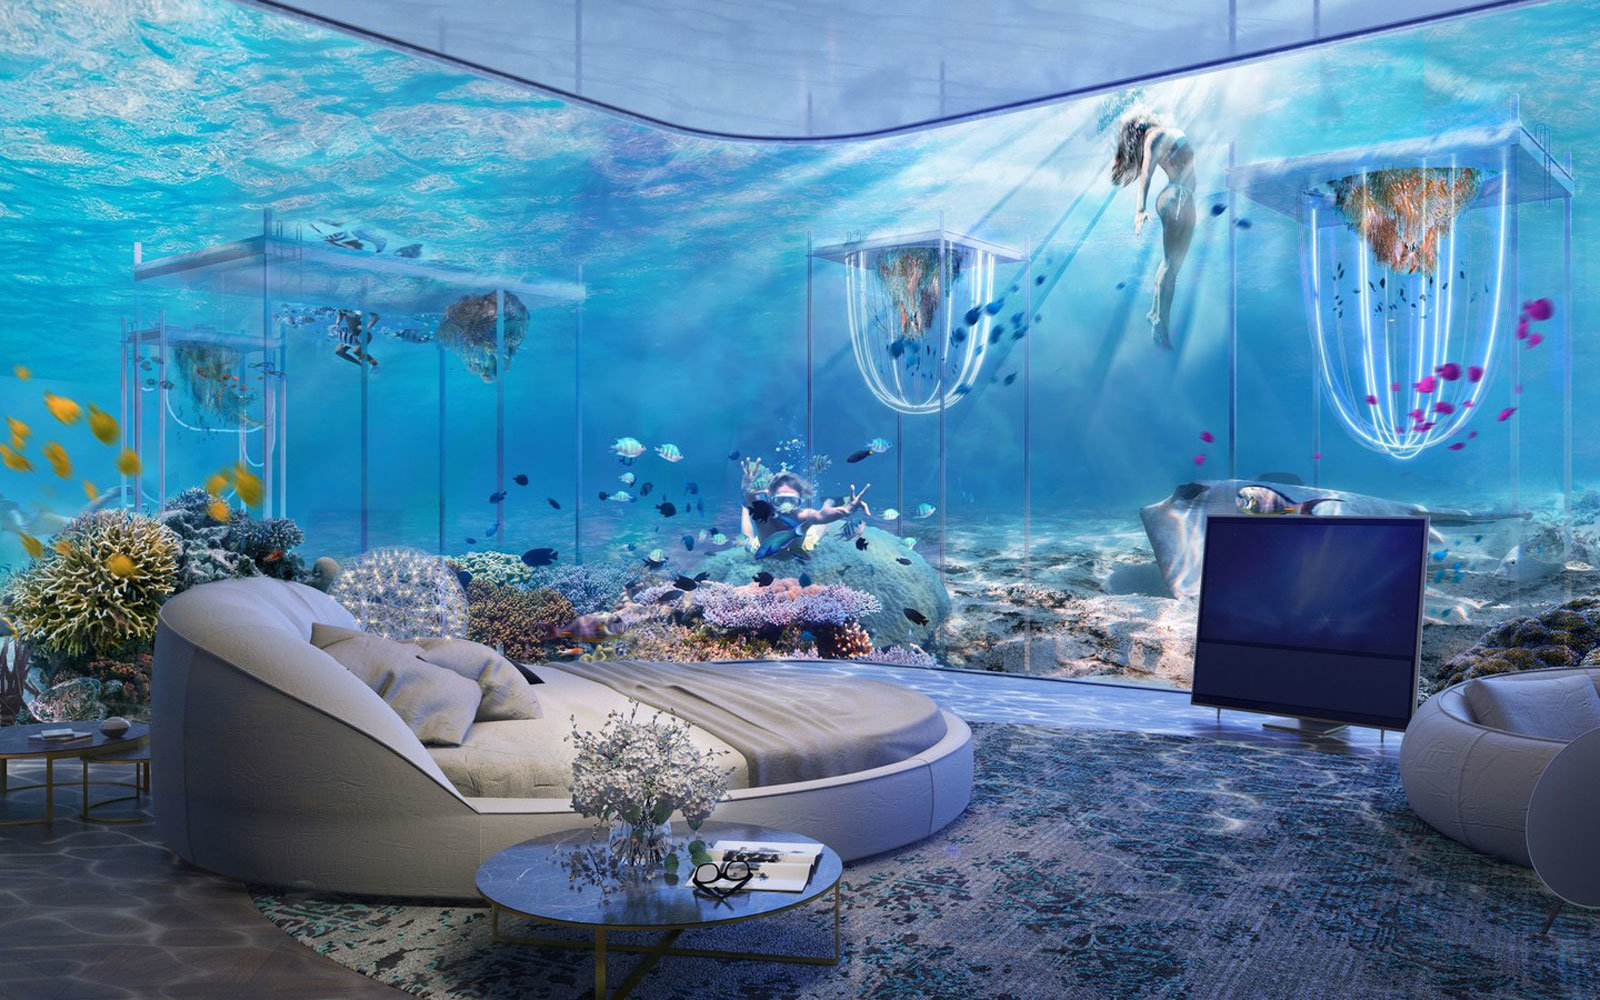 Dubai S Crazy New Floating Underwater Resort Is Inspired By Venice